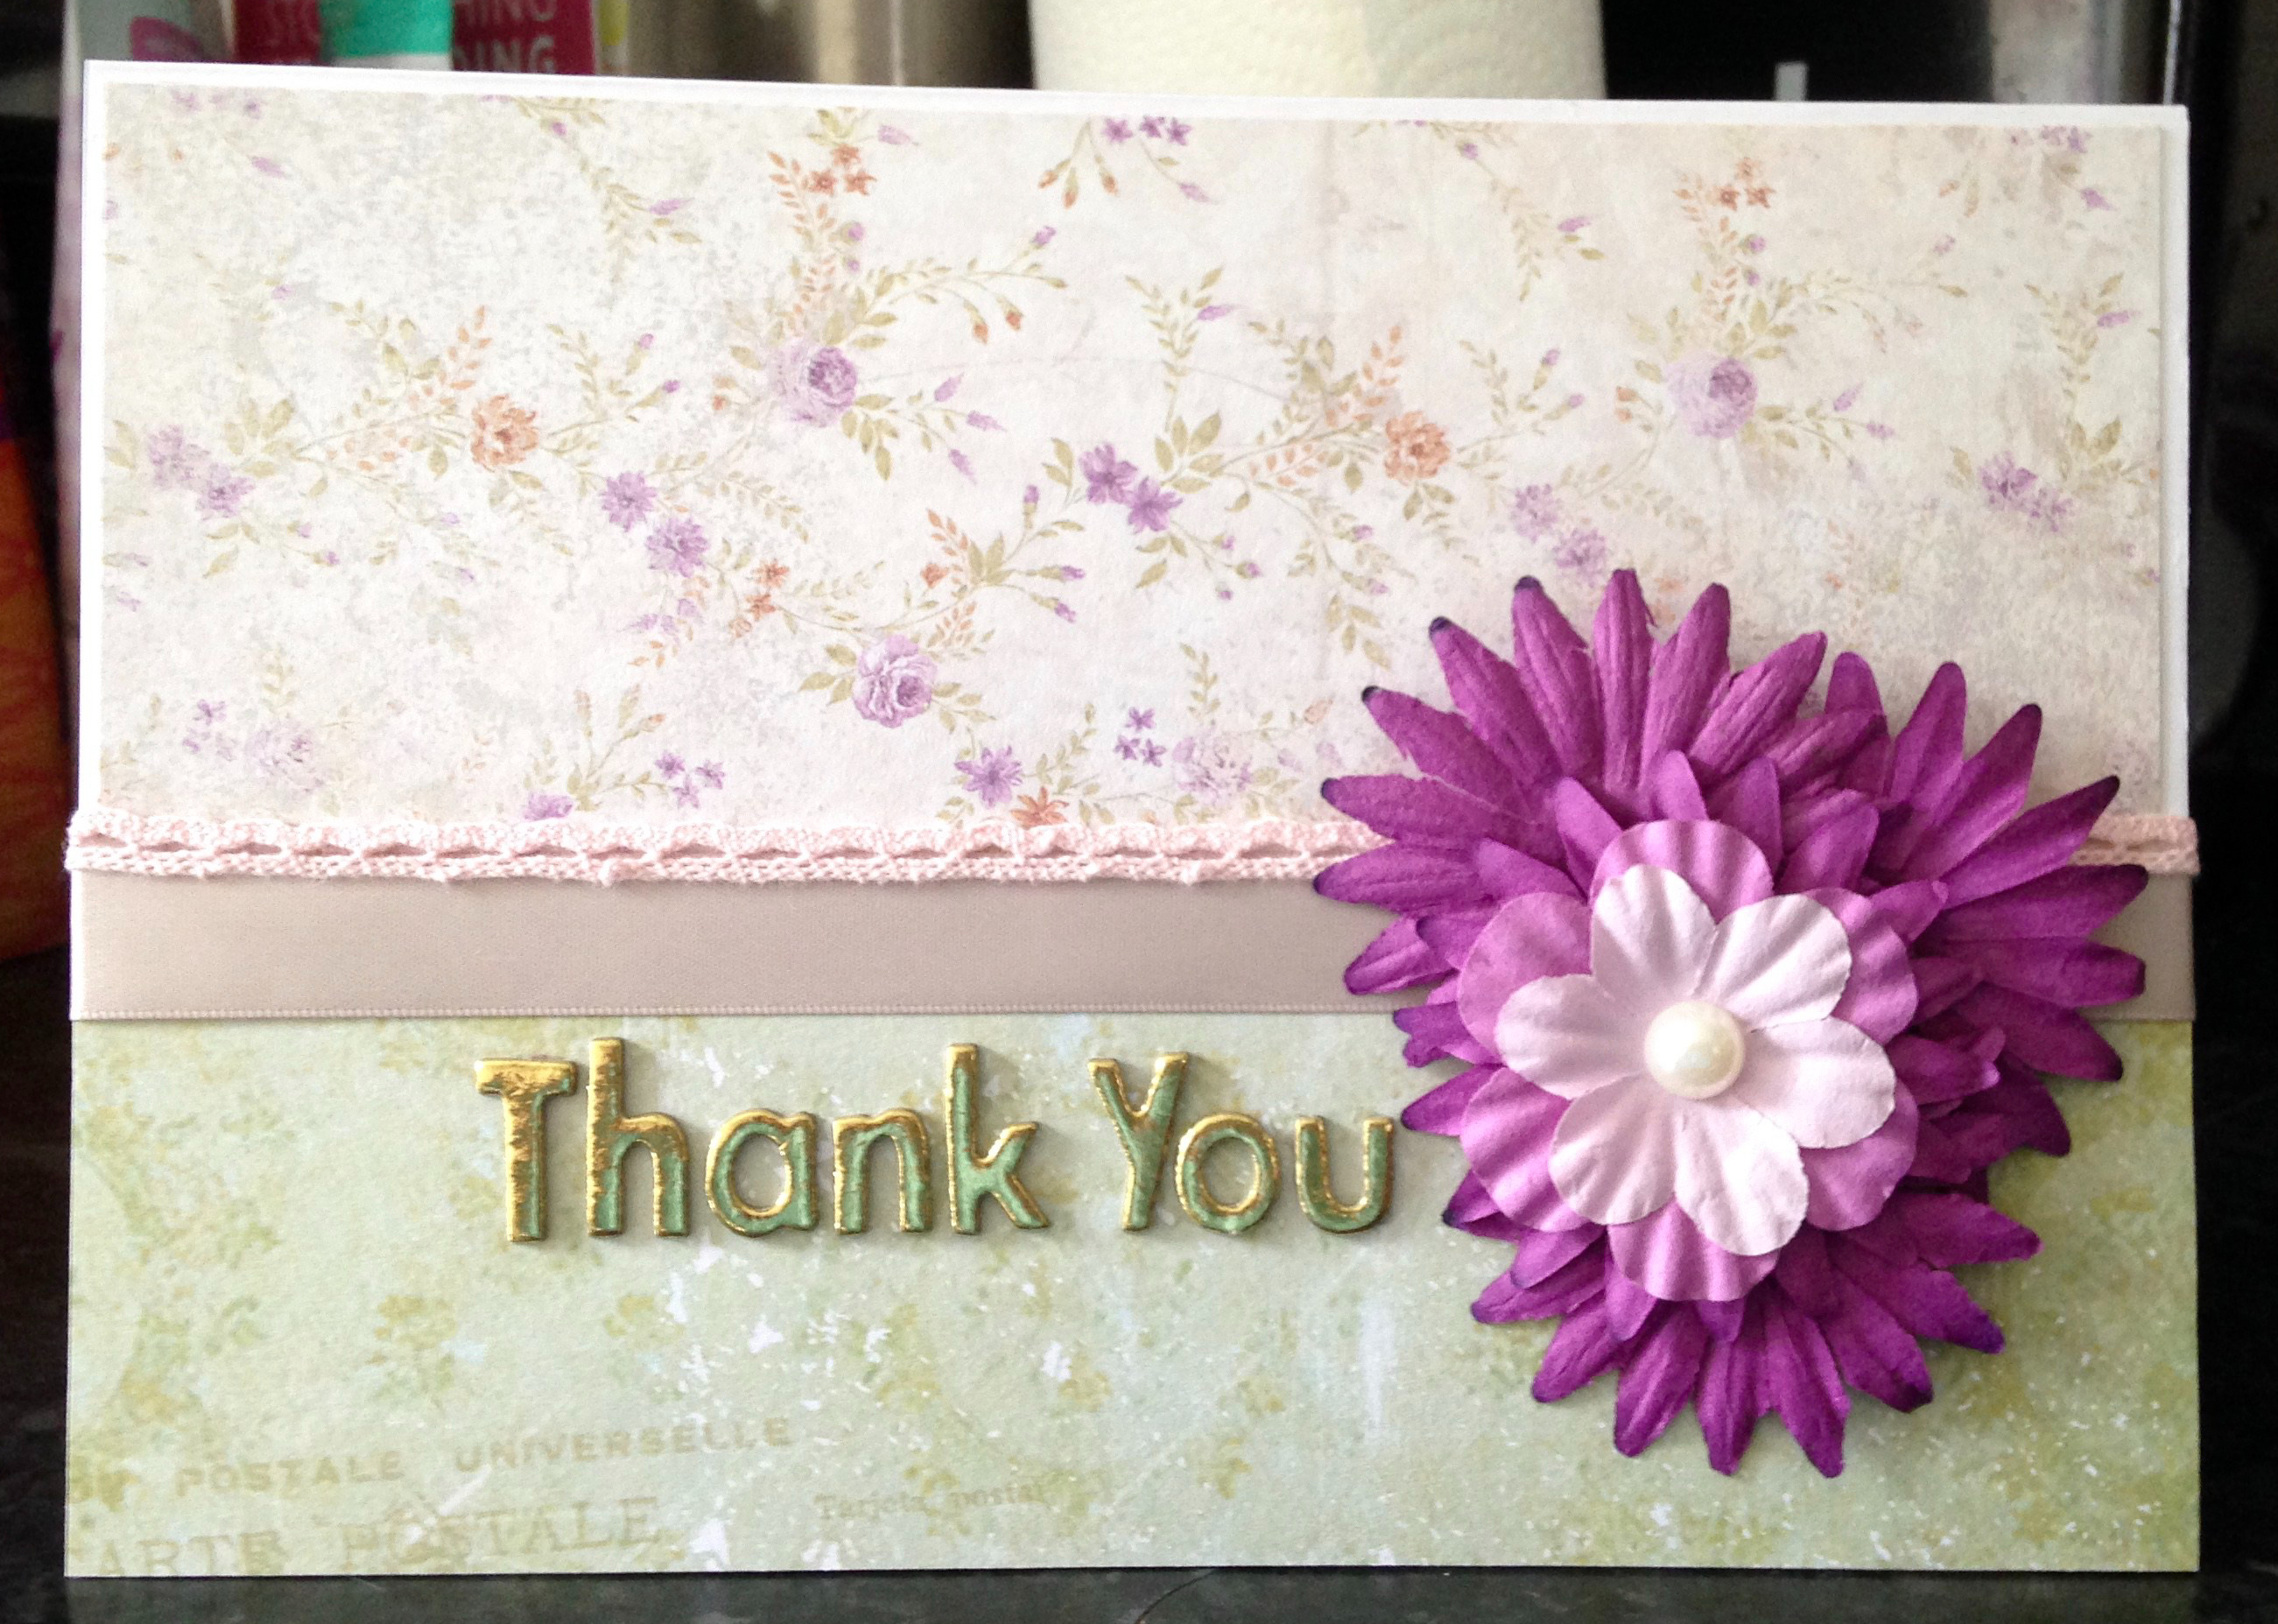 The card I made for the family of my donor.